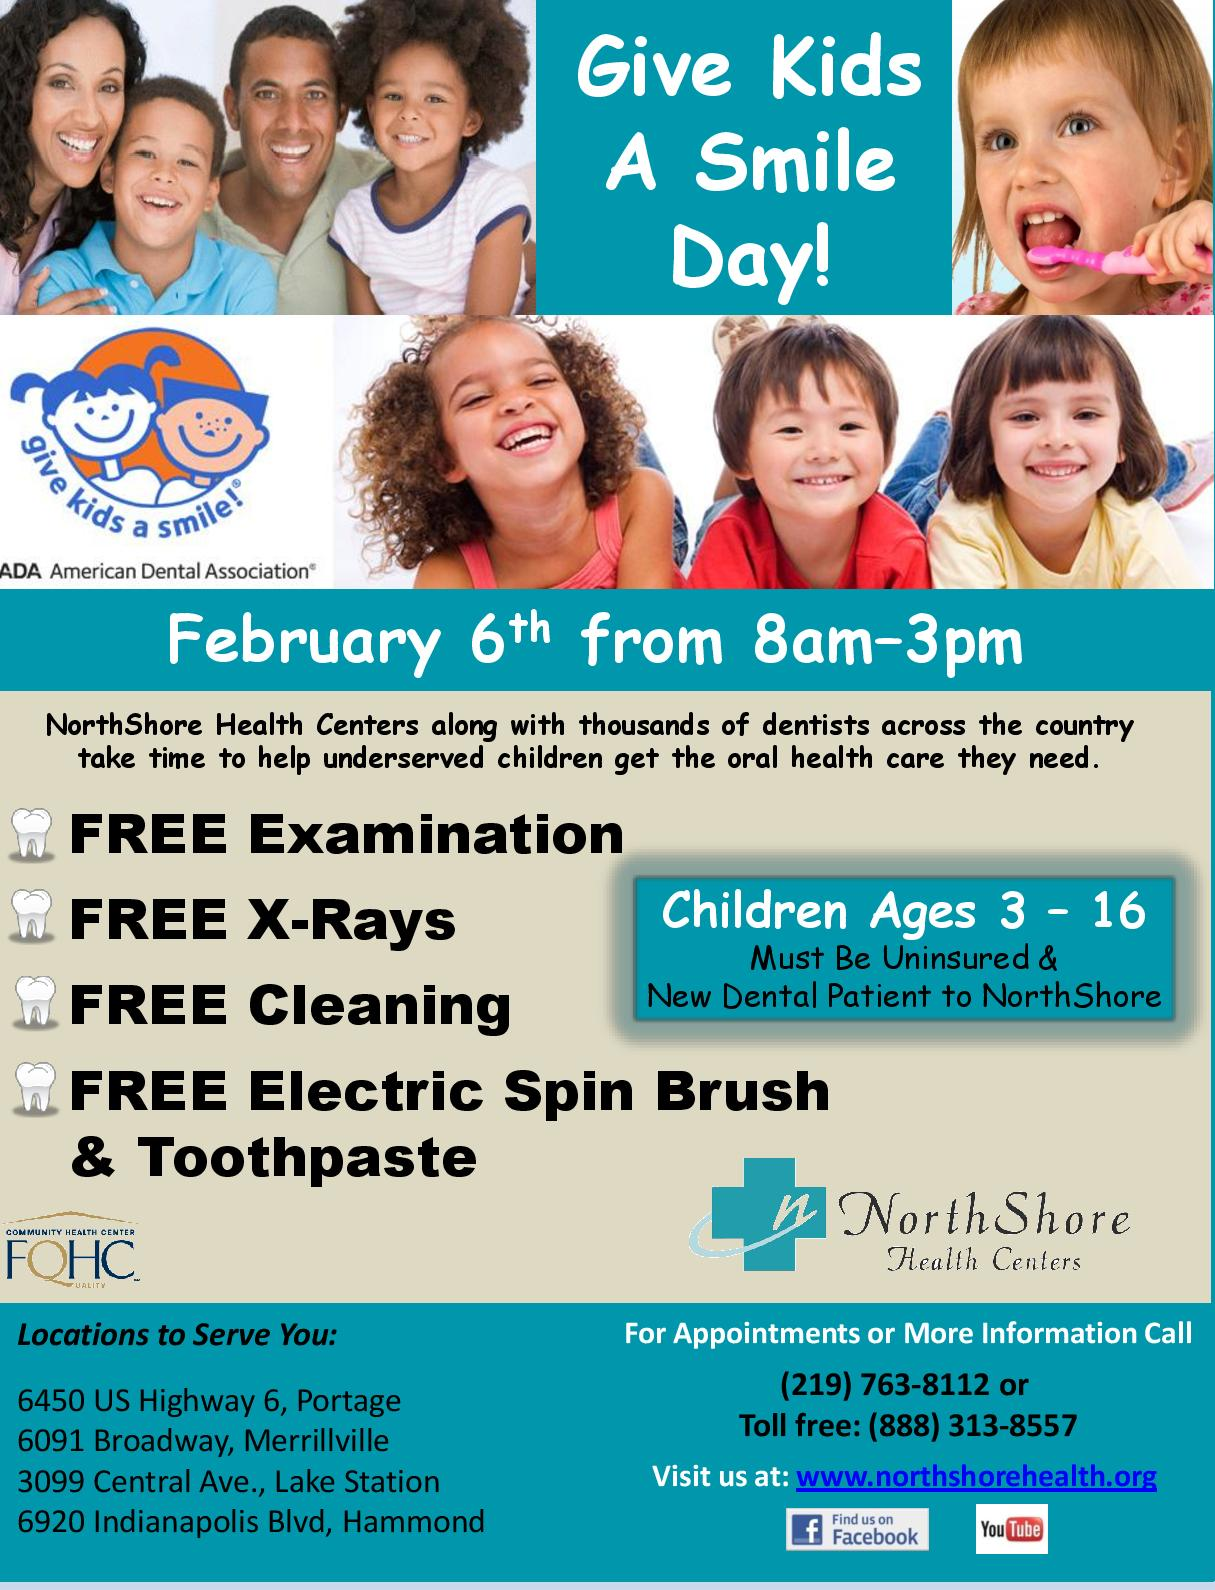 Give the Kids a Smile 2015